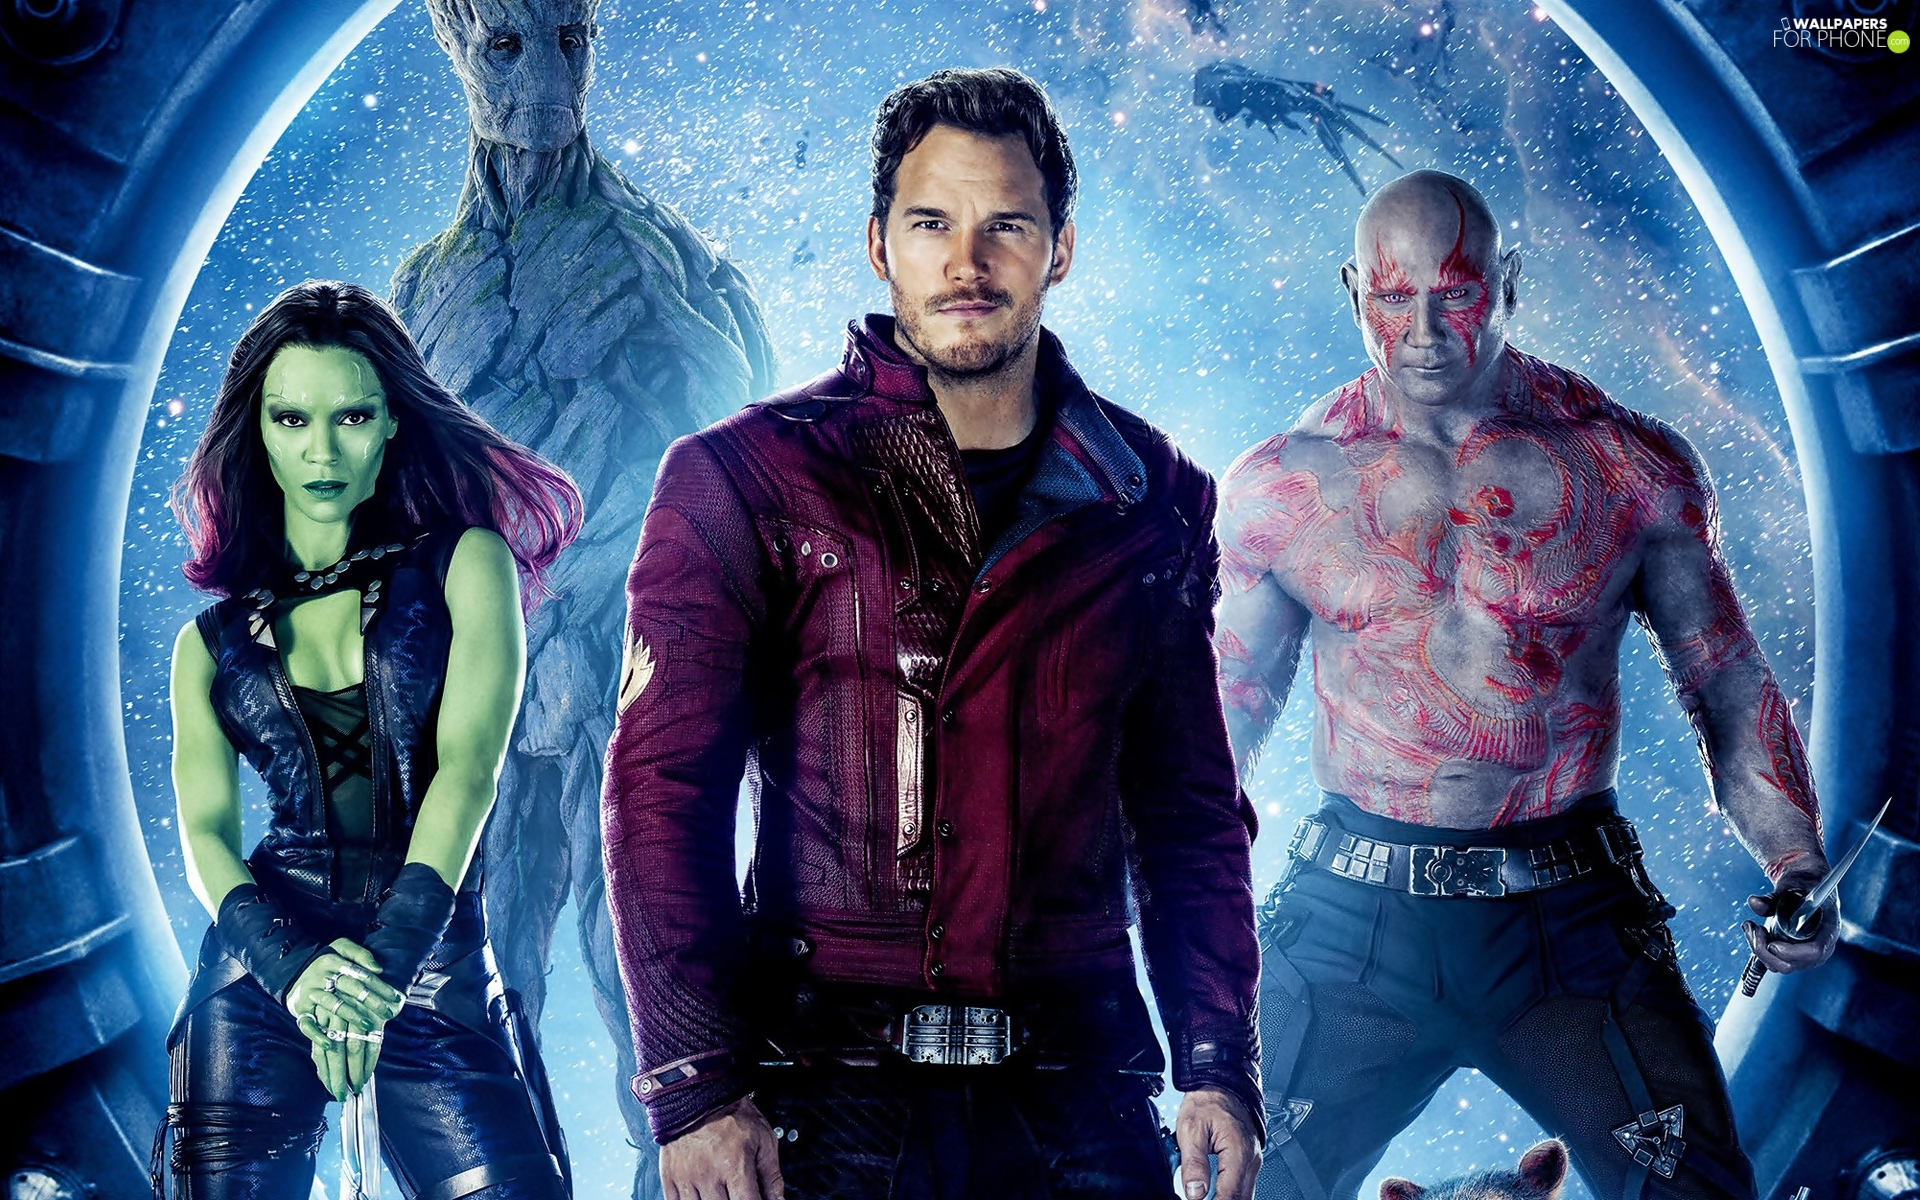 Chris Pratt, Dave Bautista, Guardians of the galaxy, Zoe Saldana, movie